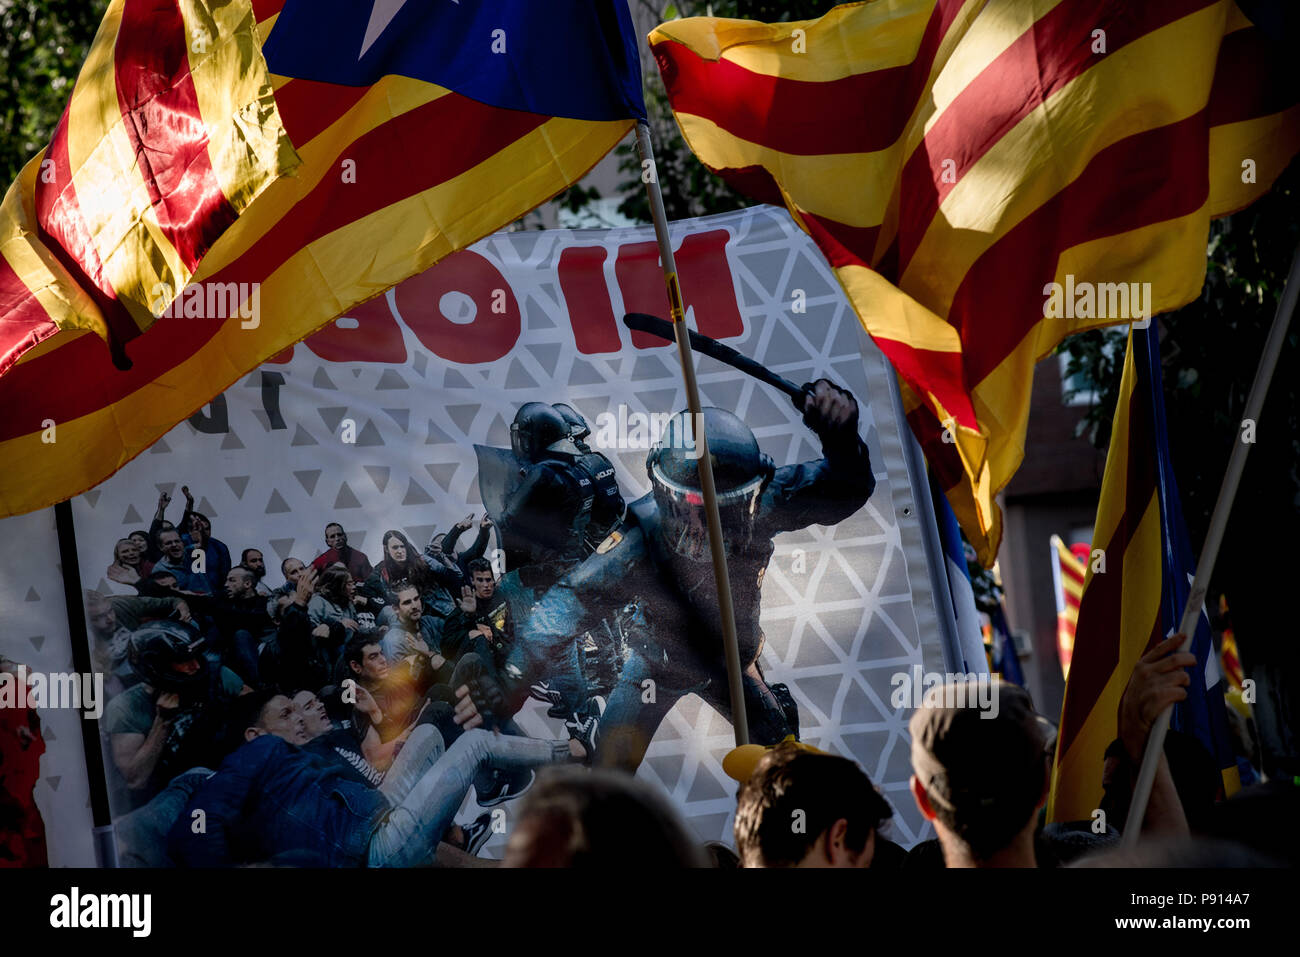 A banner showing the police brutality of the first October   referendum is seen among estelades or pro-independence flags in Barcelona. Tens of thousa - Stock Image